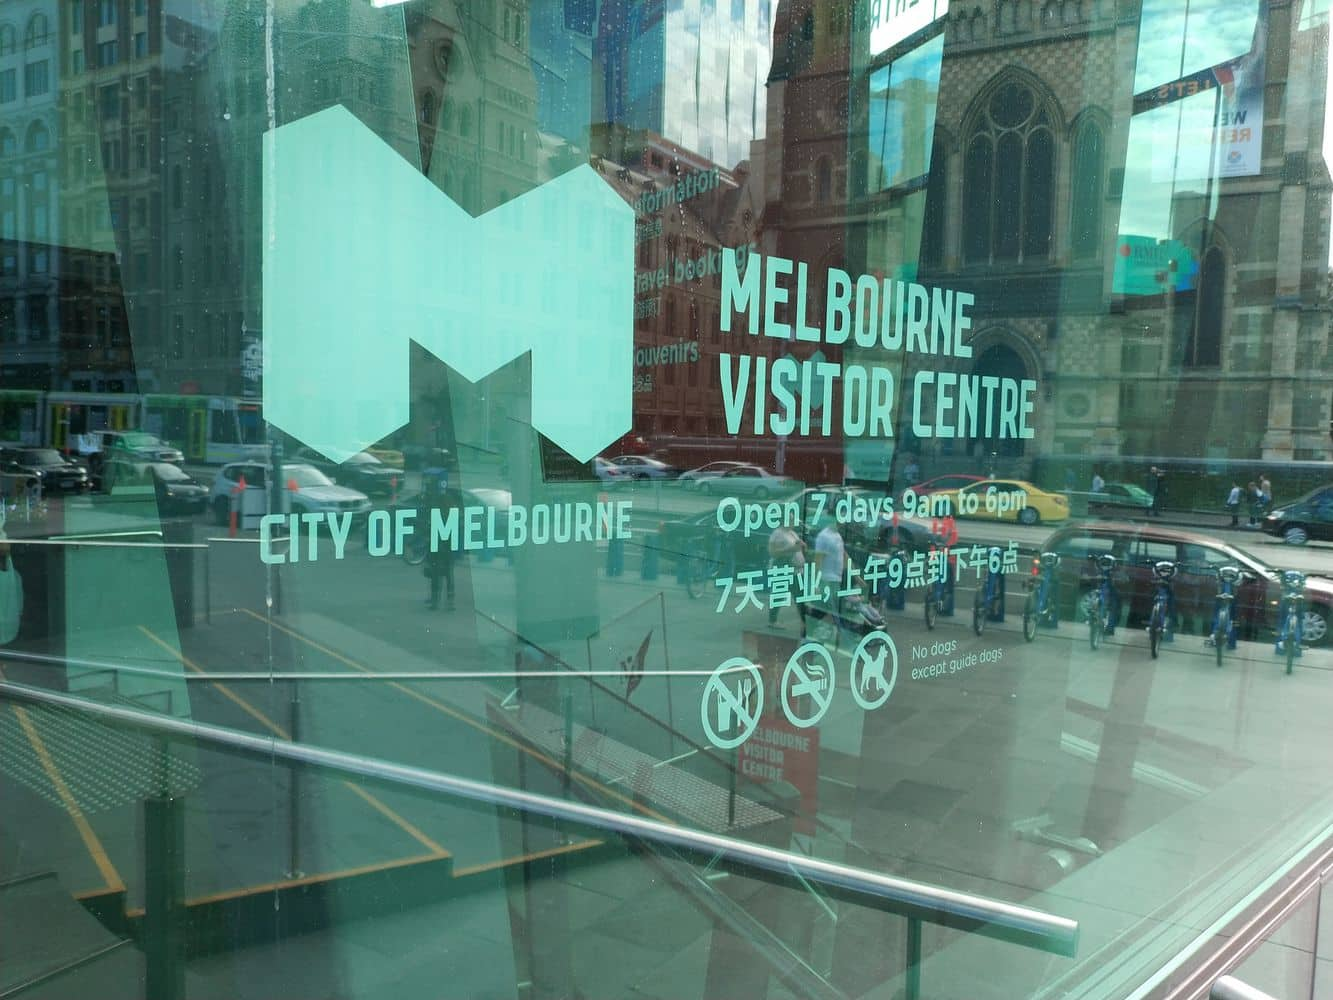 melbourne visitor centre 02